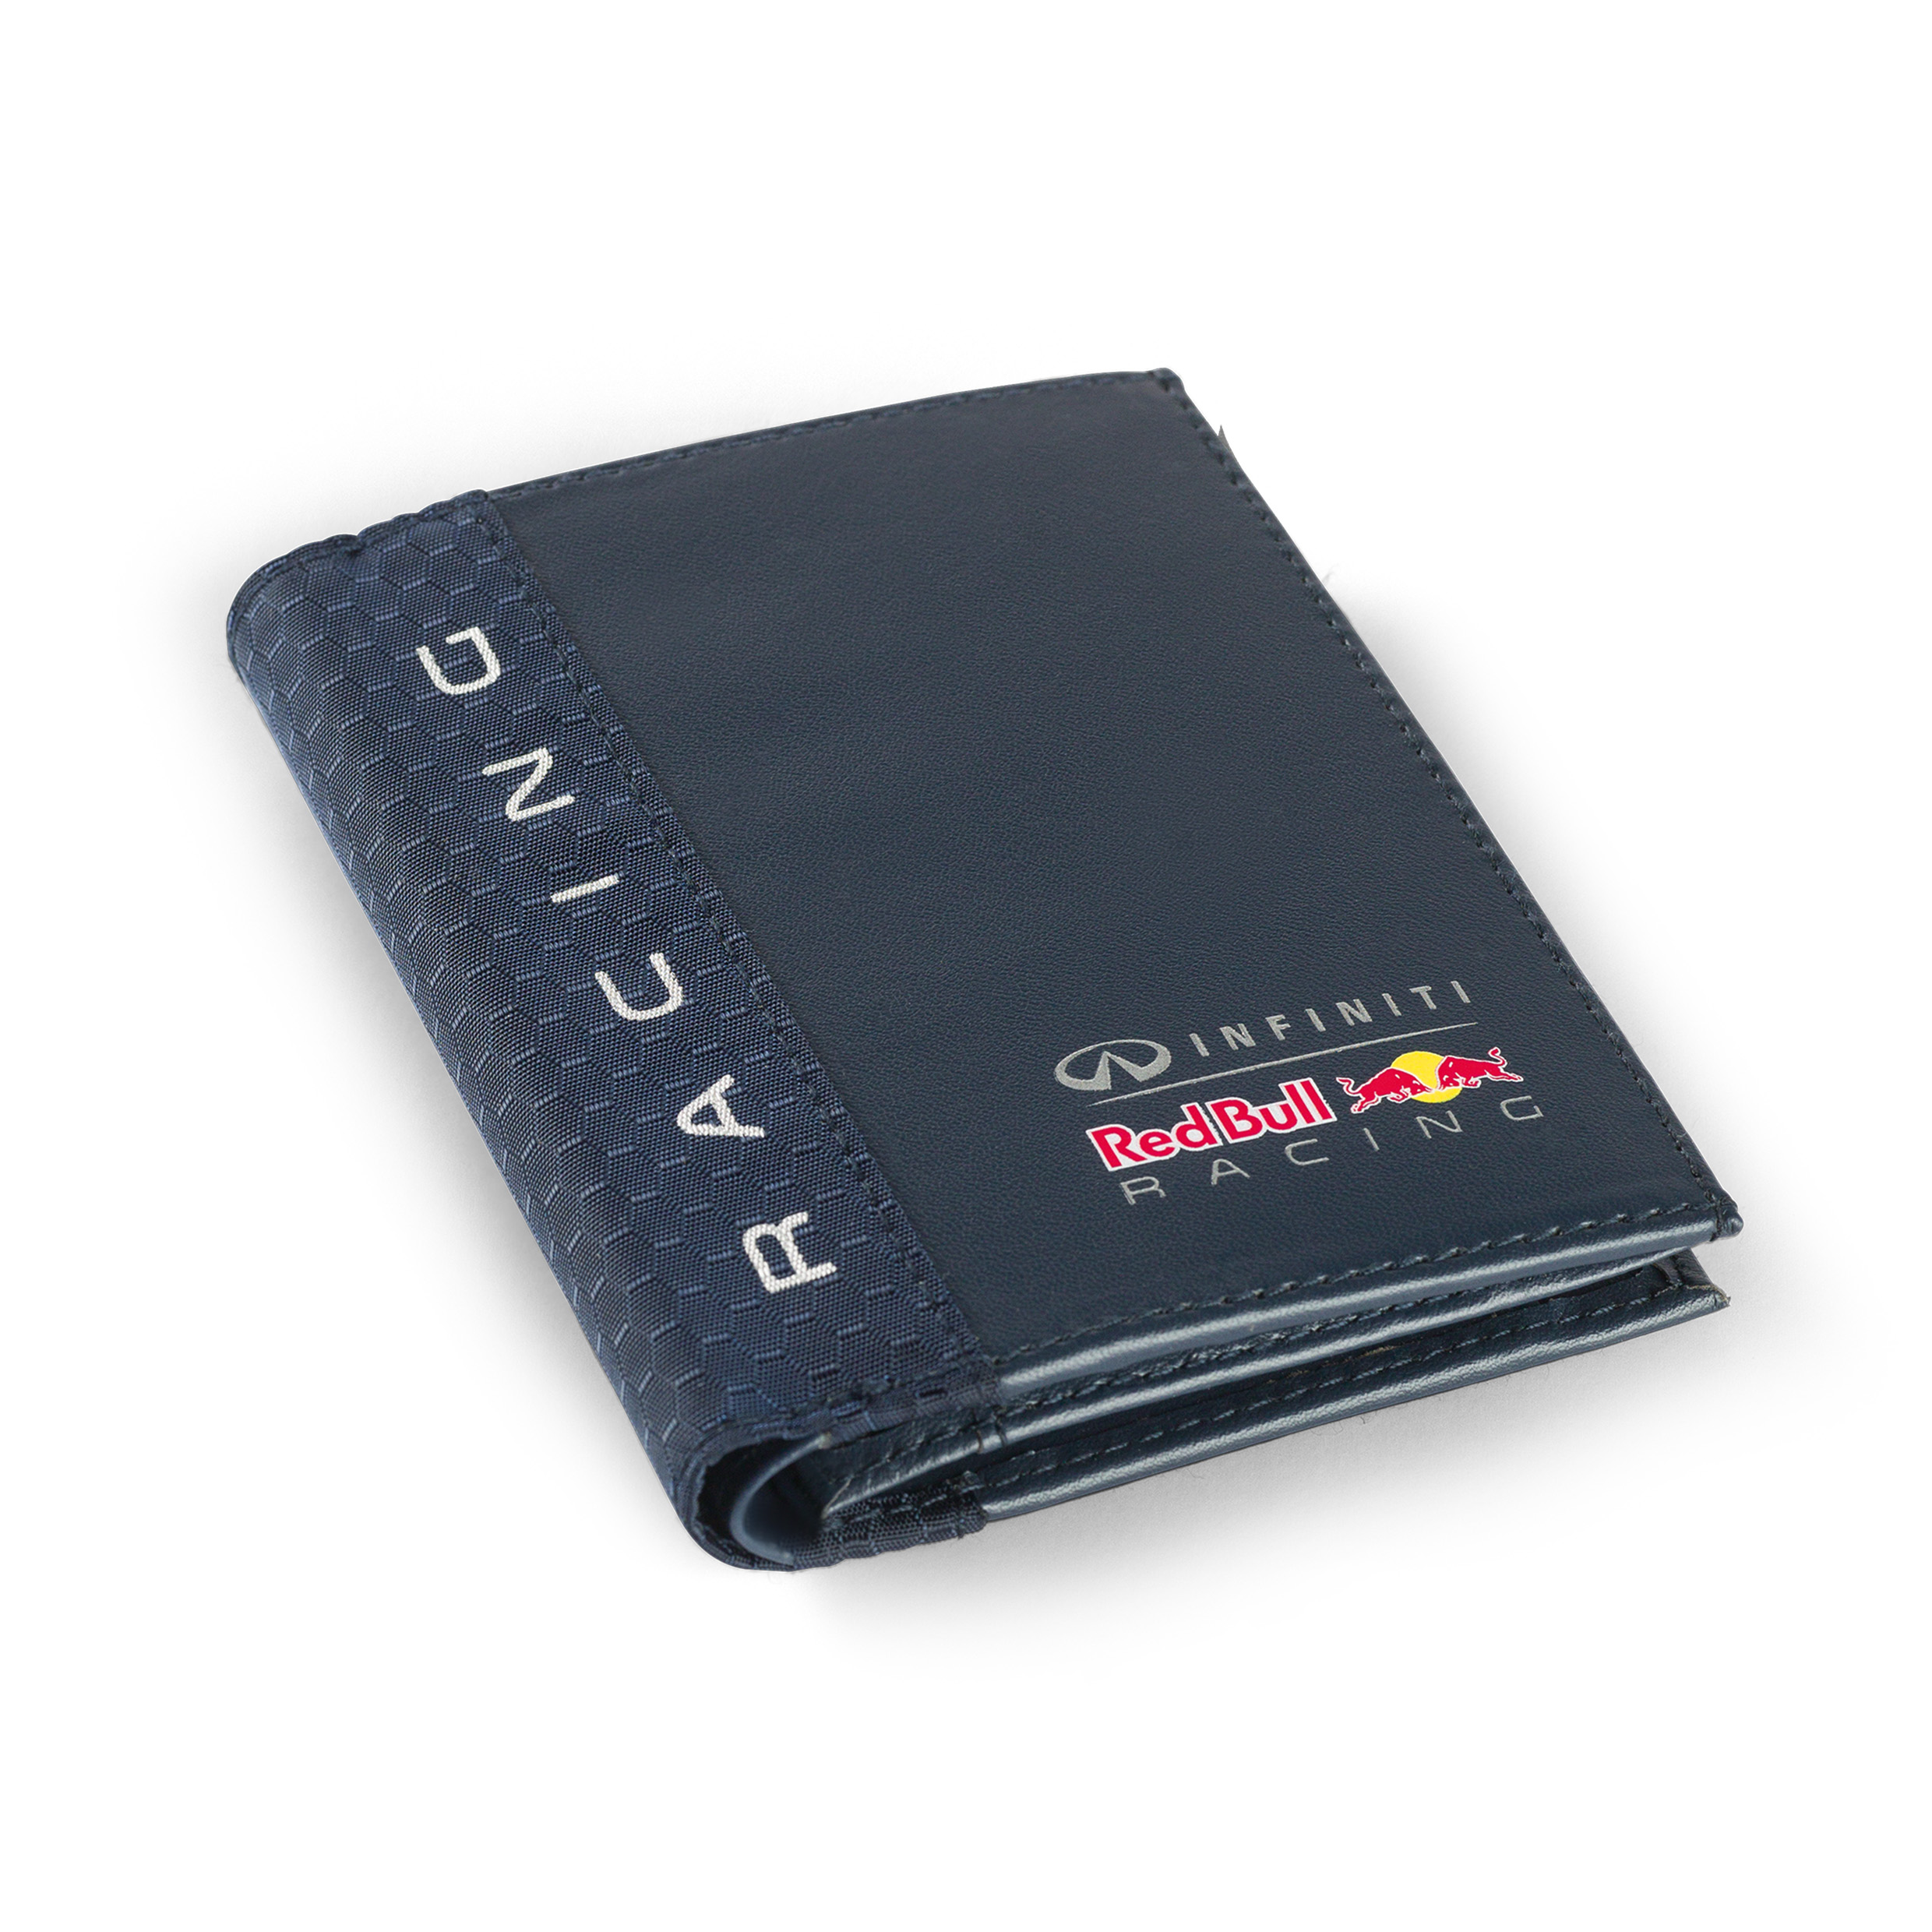 Infiniti Red Bull Racing Wallet